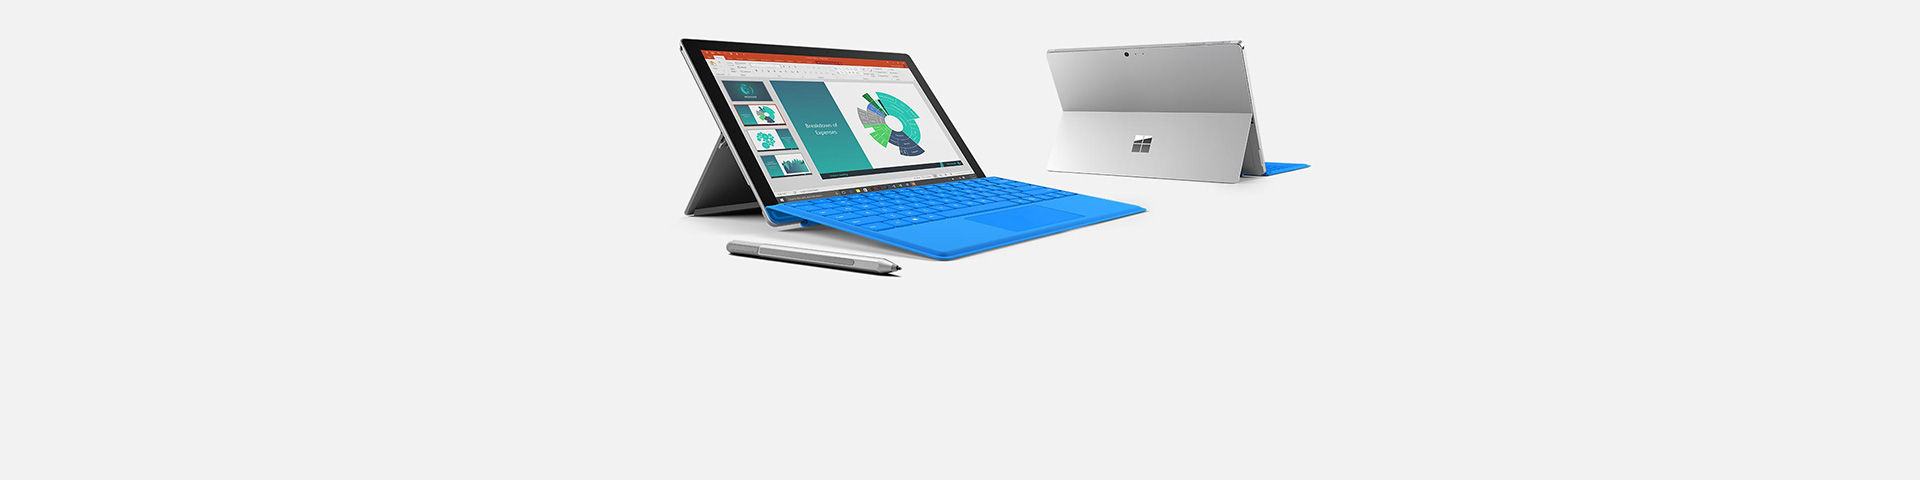 Surface Pro 4 devices